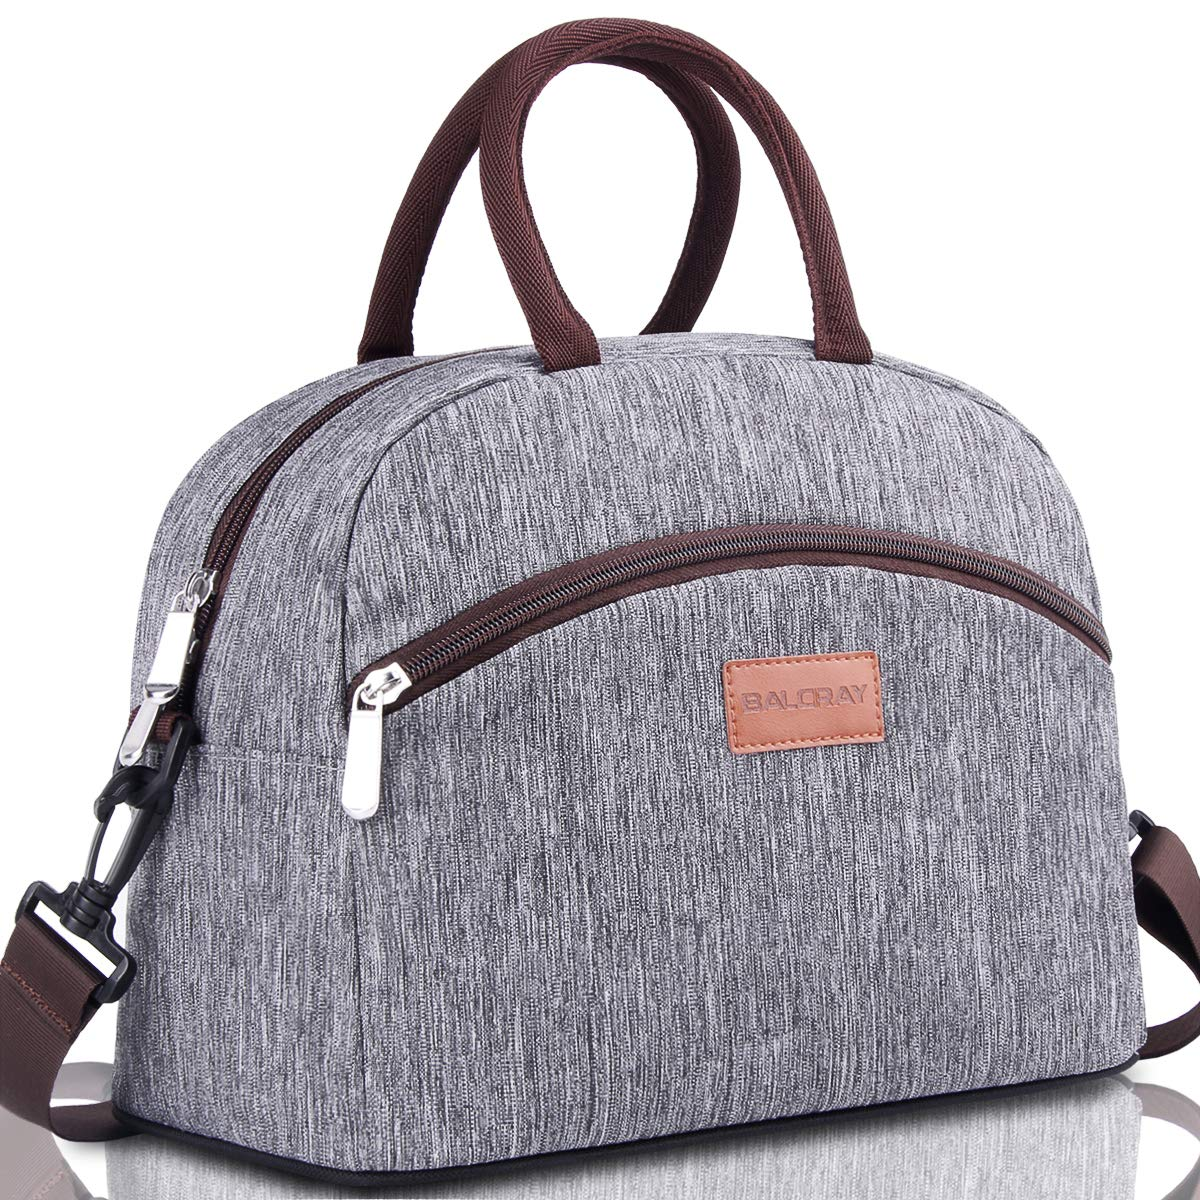 BALORAY Lunch Bag for Women and Men Lunch Box with 2 Side Zip Pockets Detachable Shoulder Strap & Carry Handle Reusable Lunch bag Eco-friendly Cooler Bag Insulated Lunch bags(Grey) by BALORAY